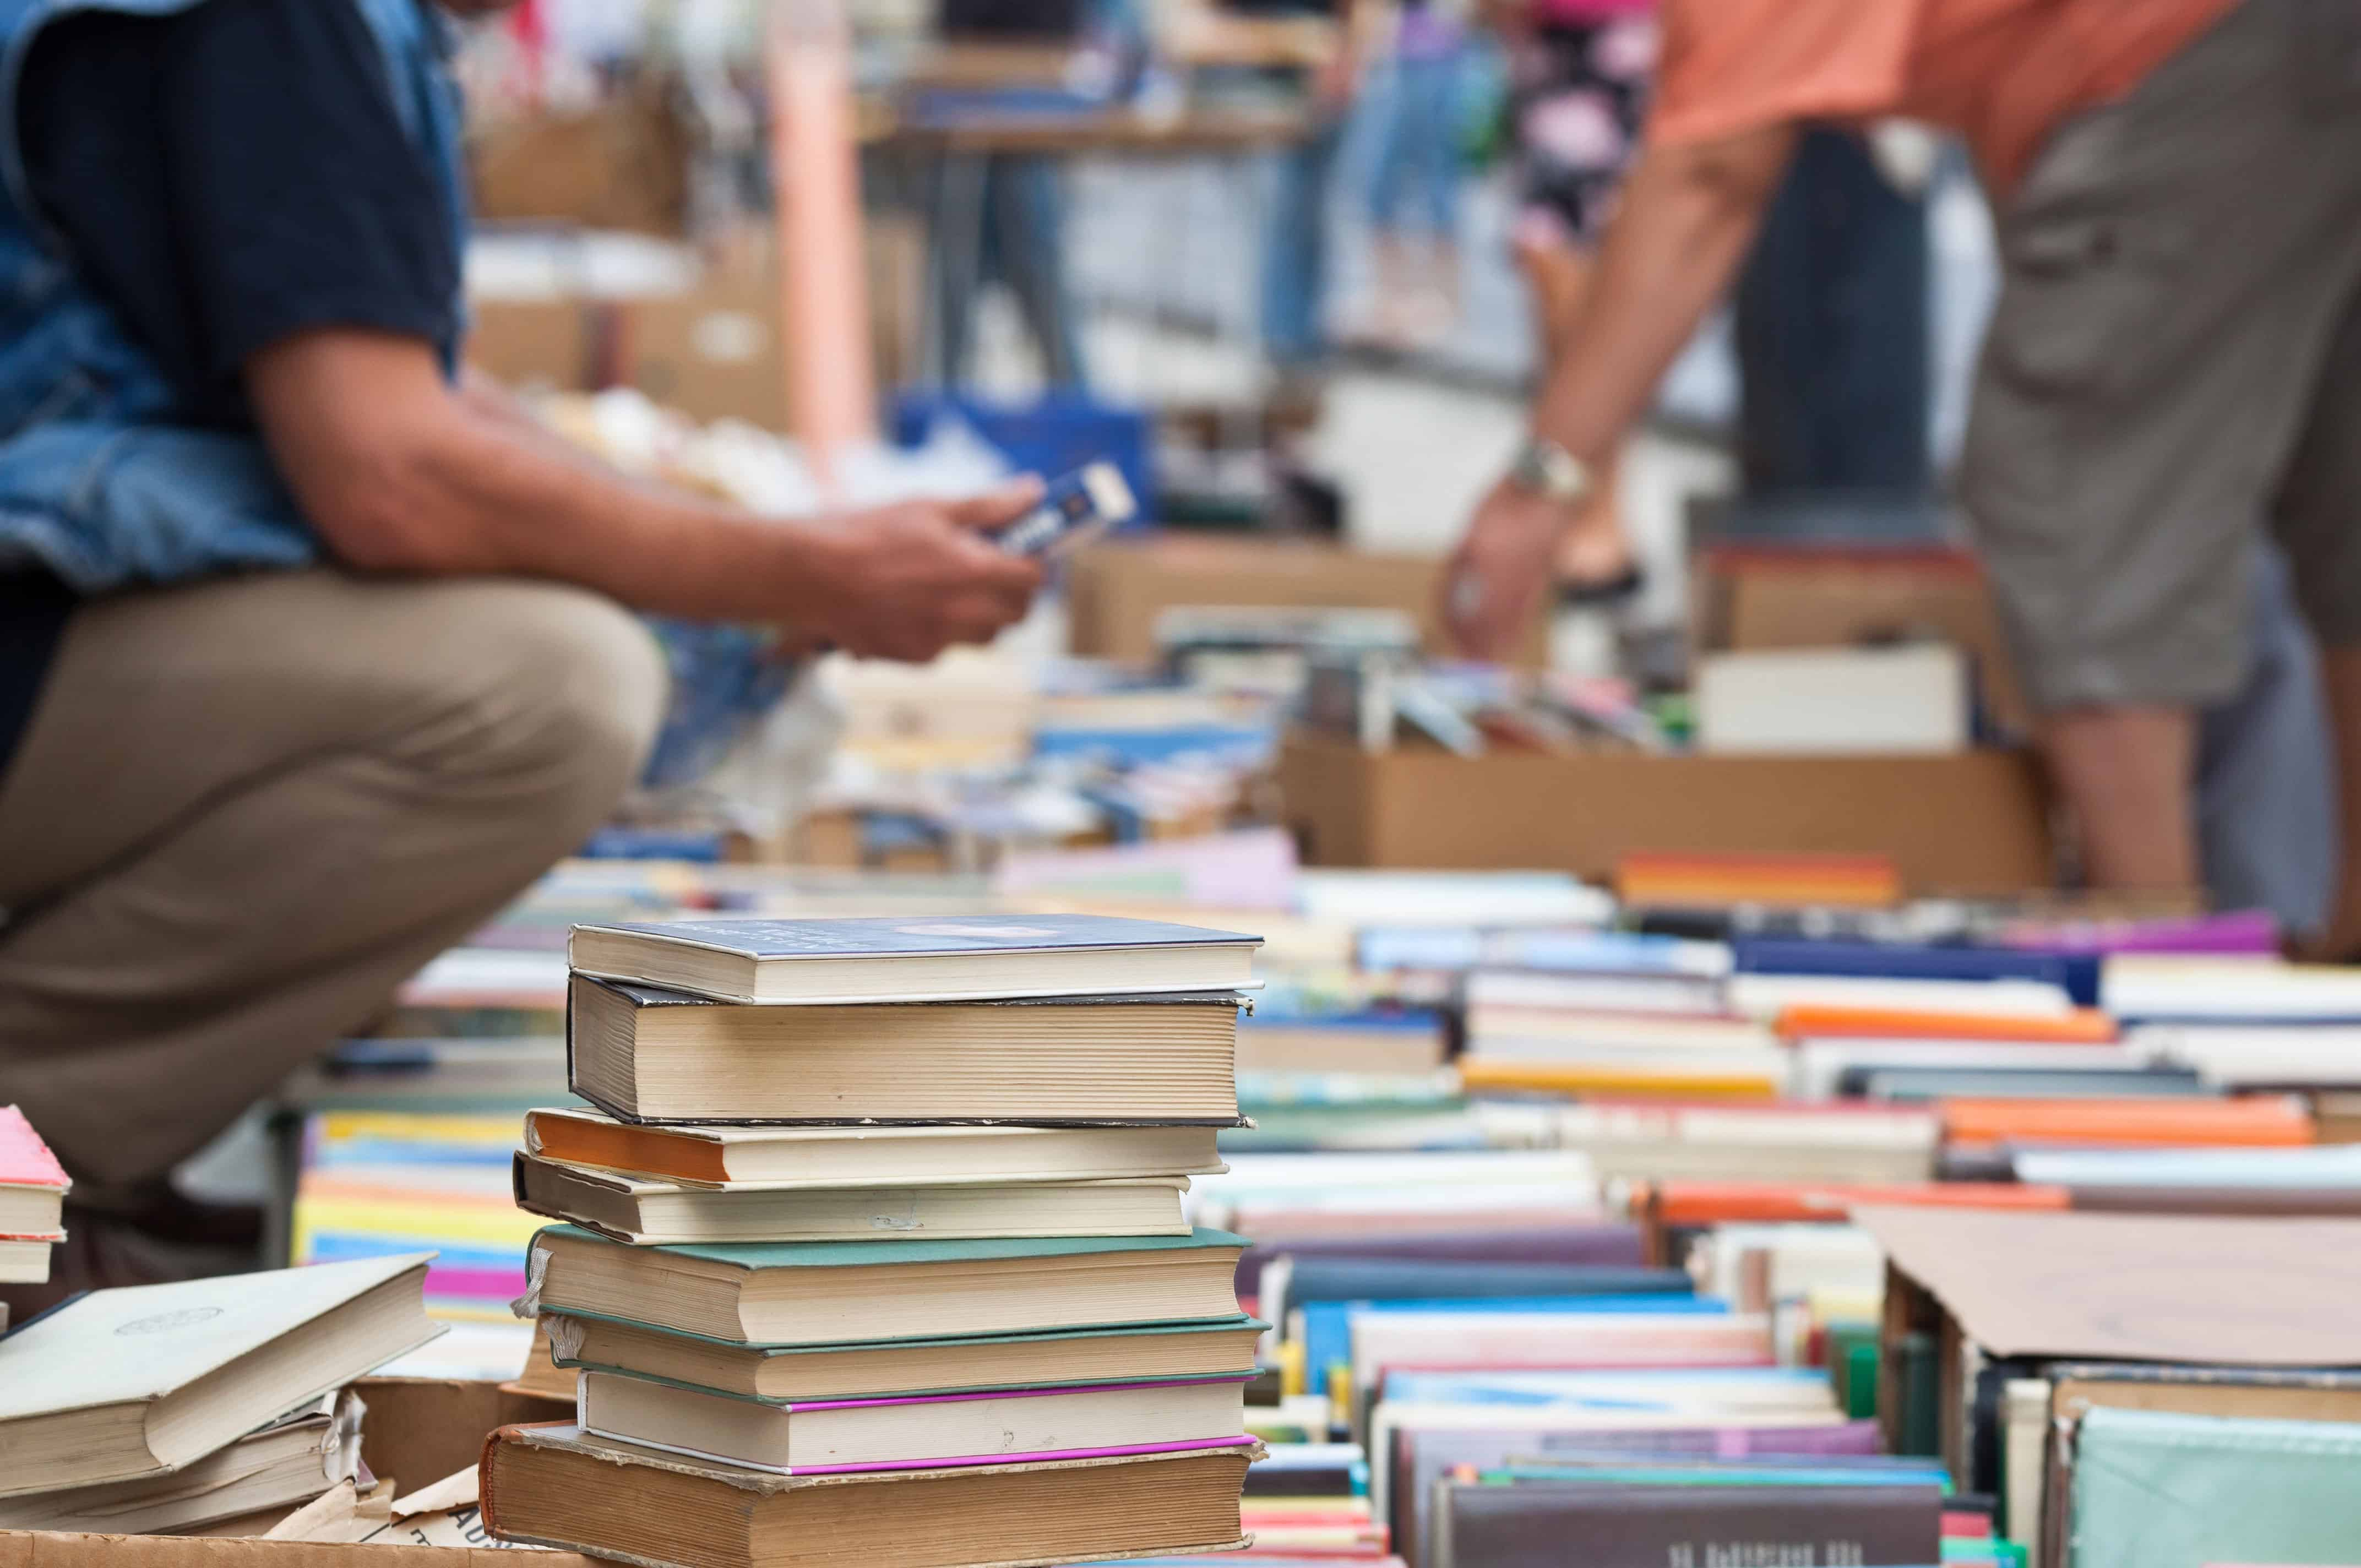 Browse the stacks, not the racks